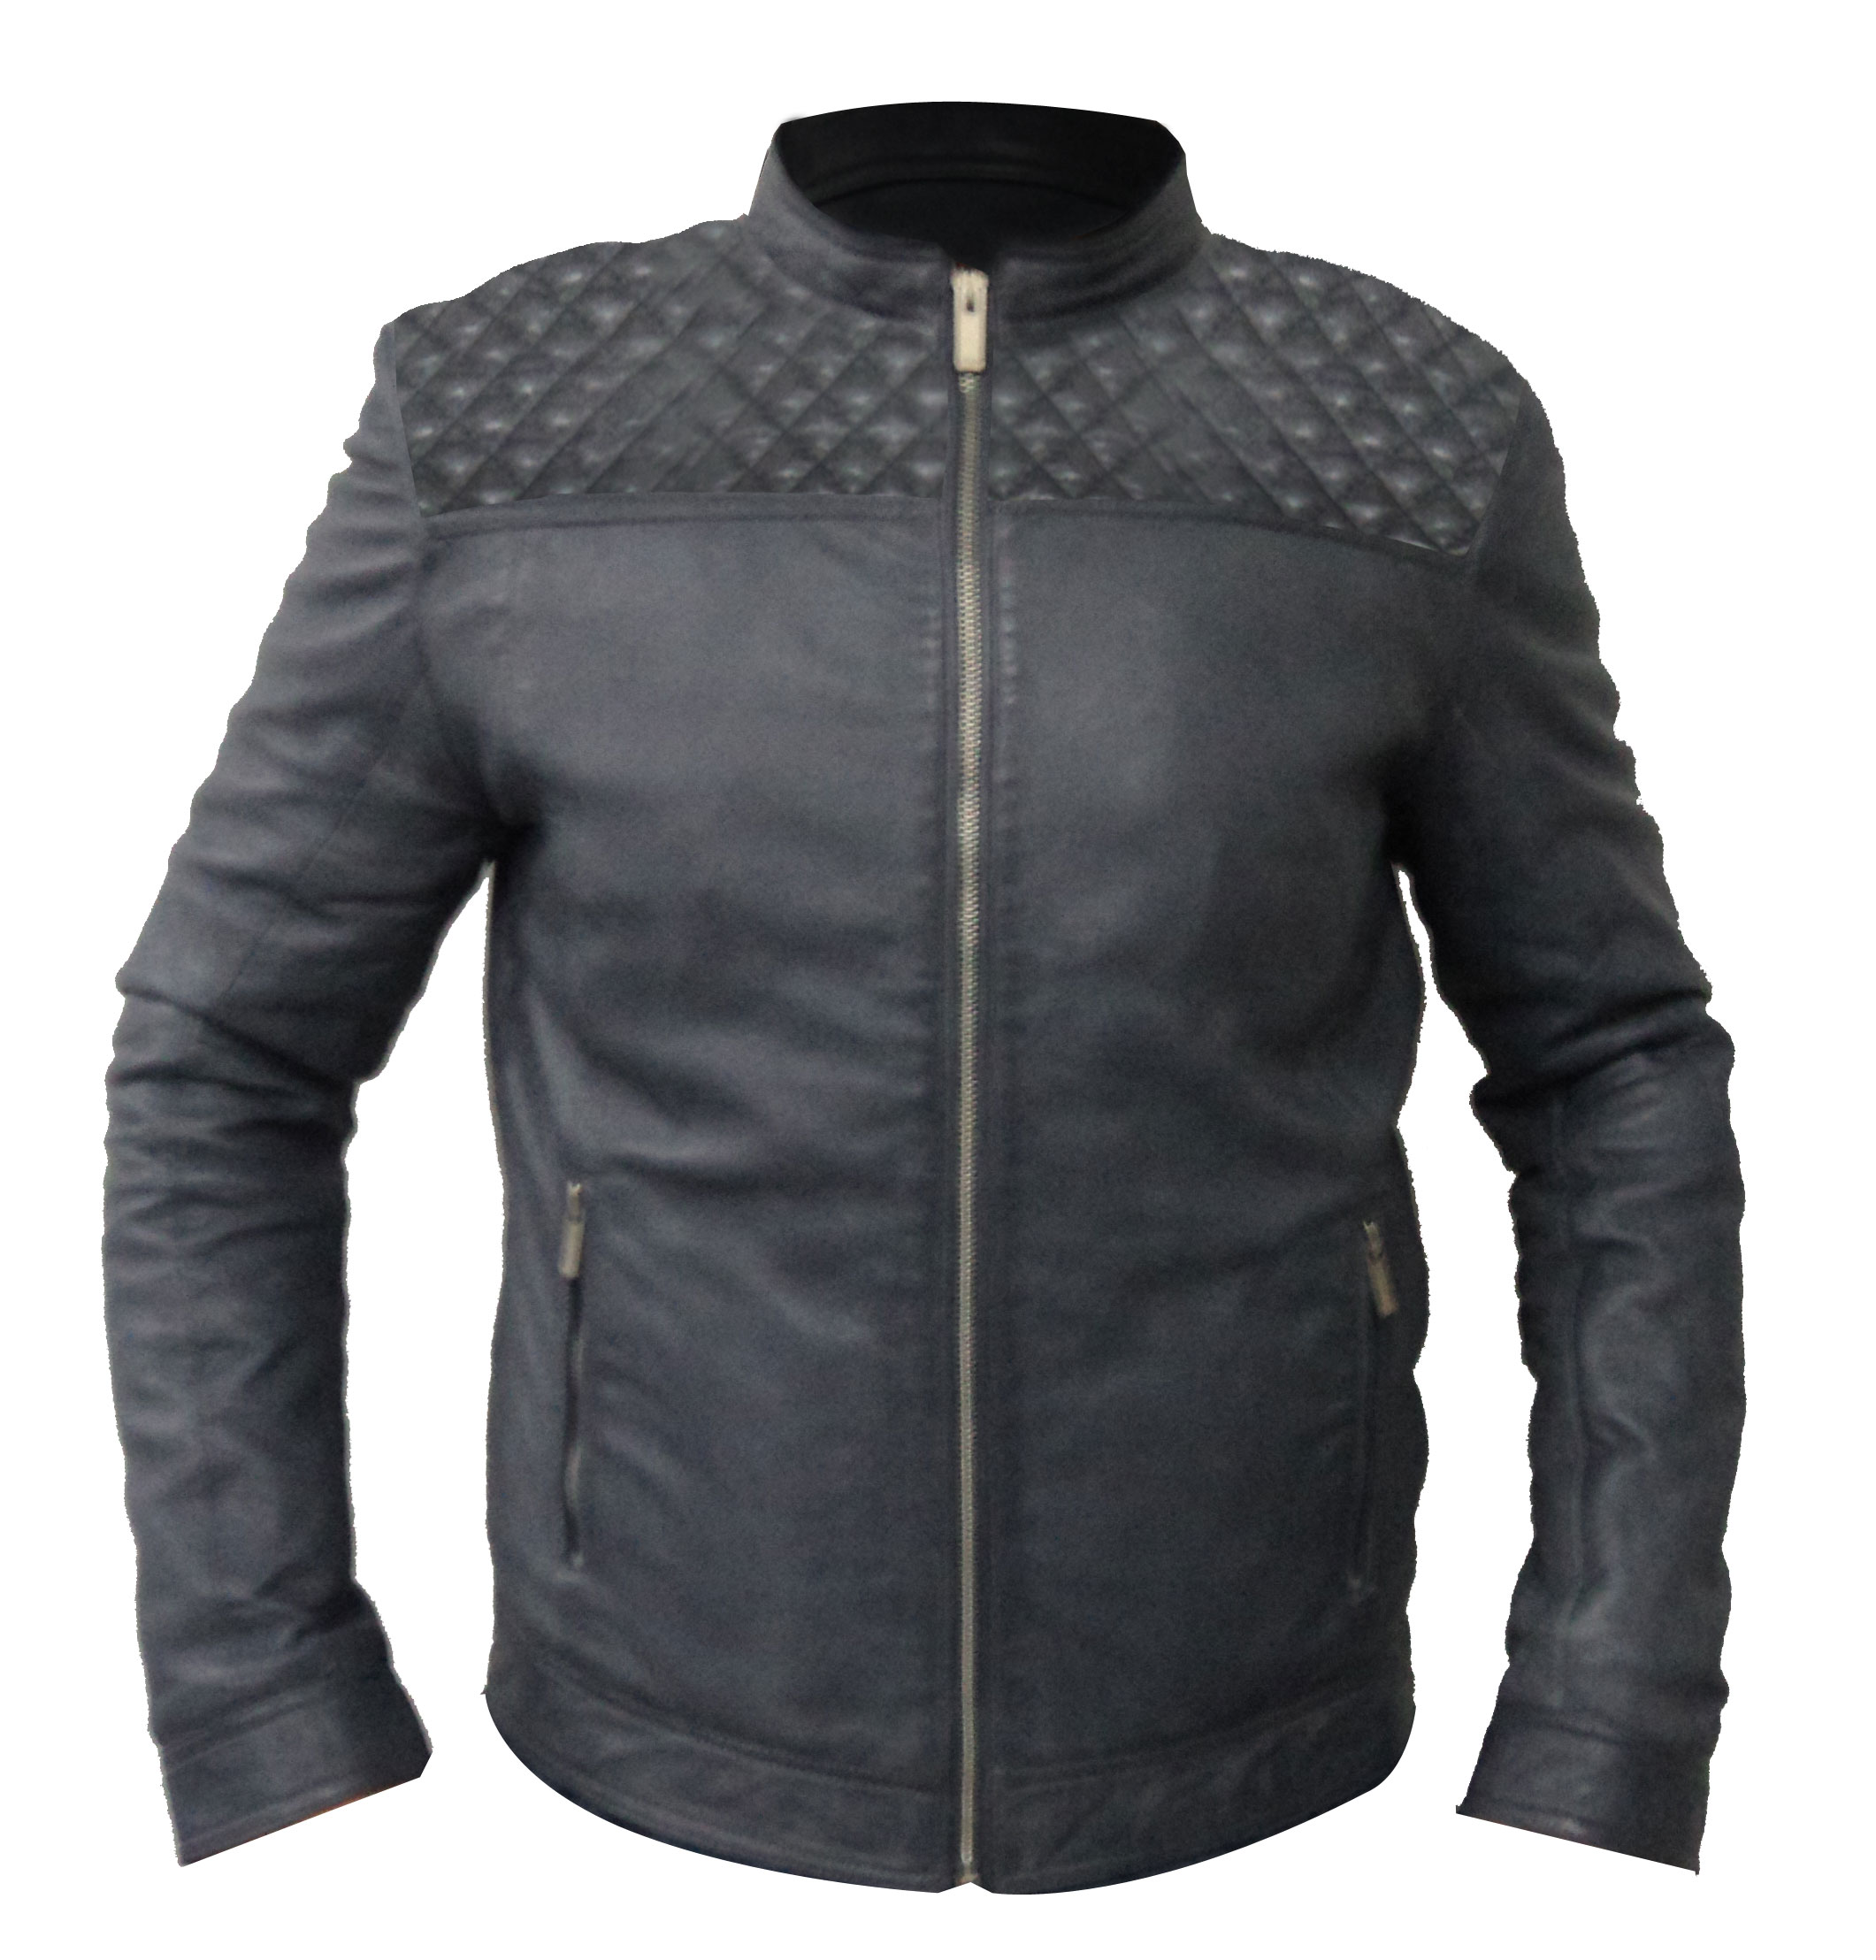 New Look Men S Leather Jackets 100 Real Leather Sold By Fazons Wears On Storenvy